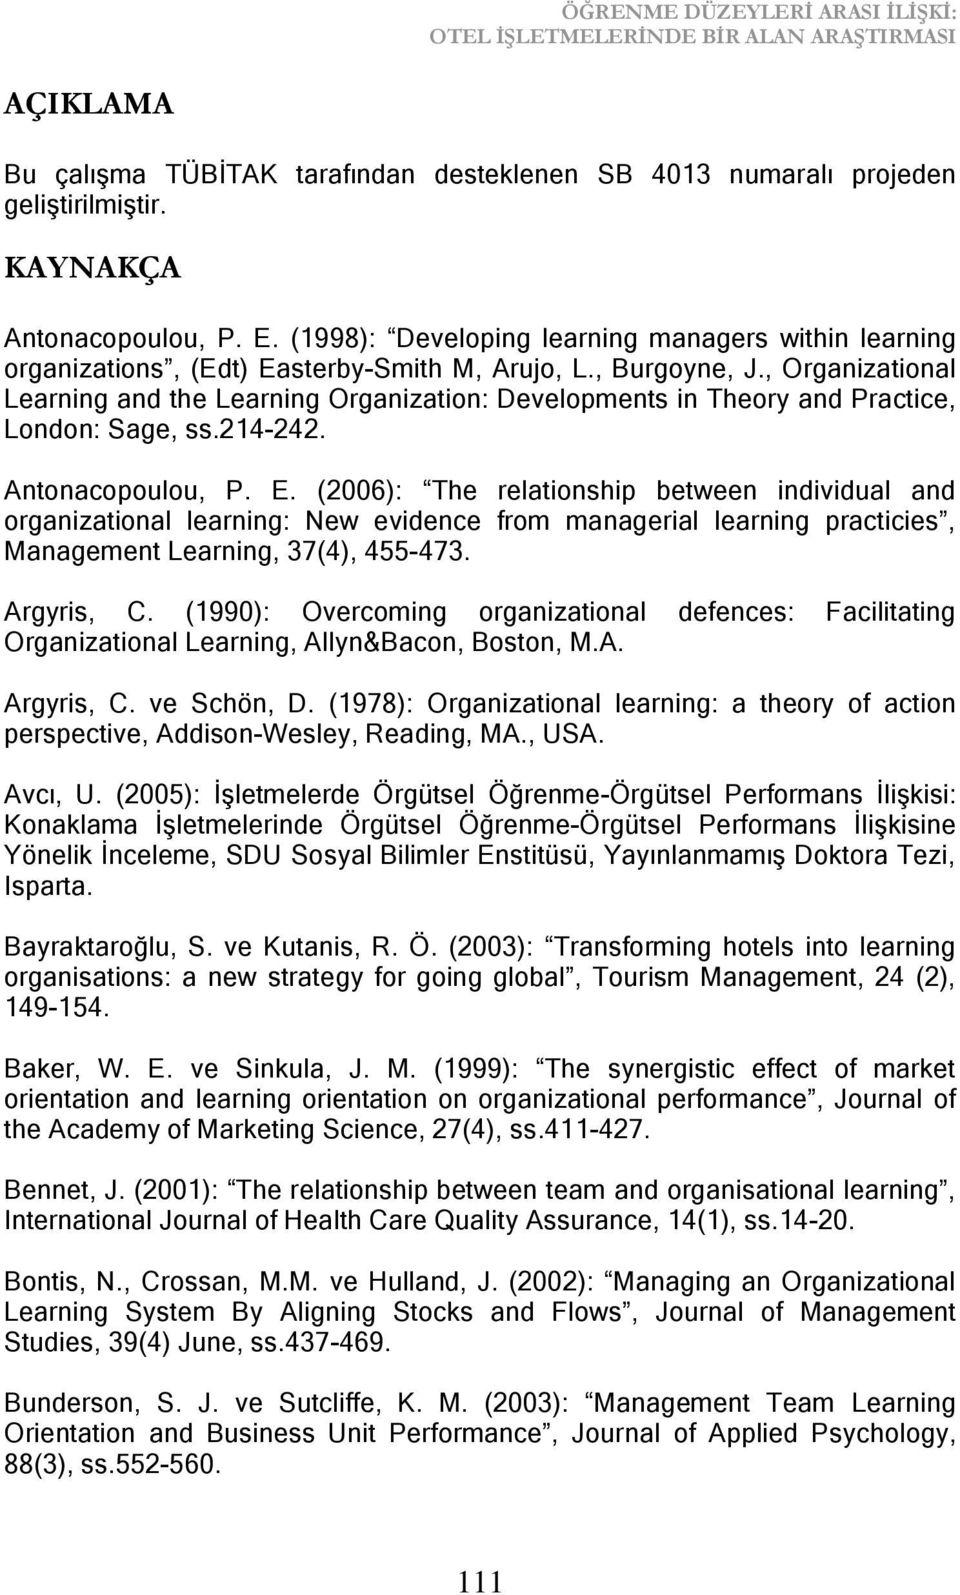 , Organizational Learning and the Learning Organization: Developments in Theory and Practice, London: Sage, ss.214-242. Antonacopoulou, P. E.